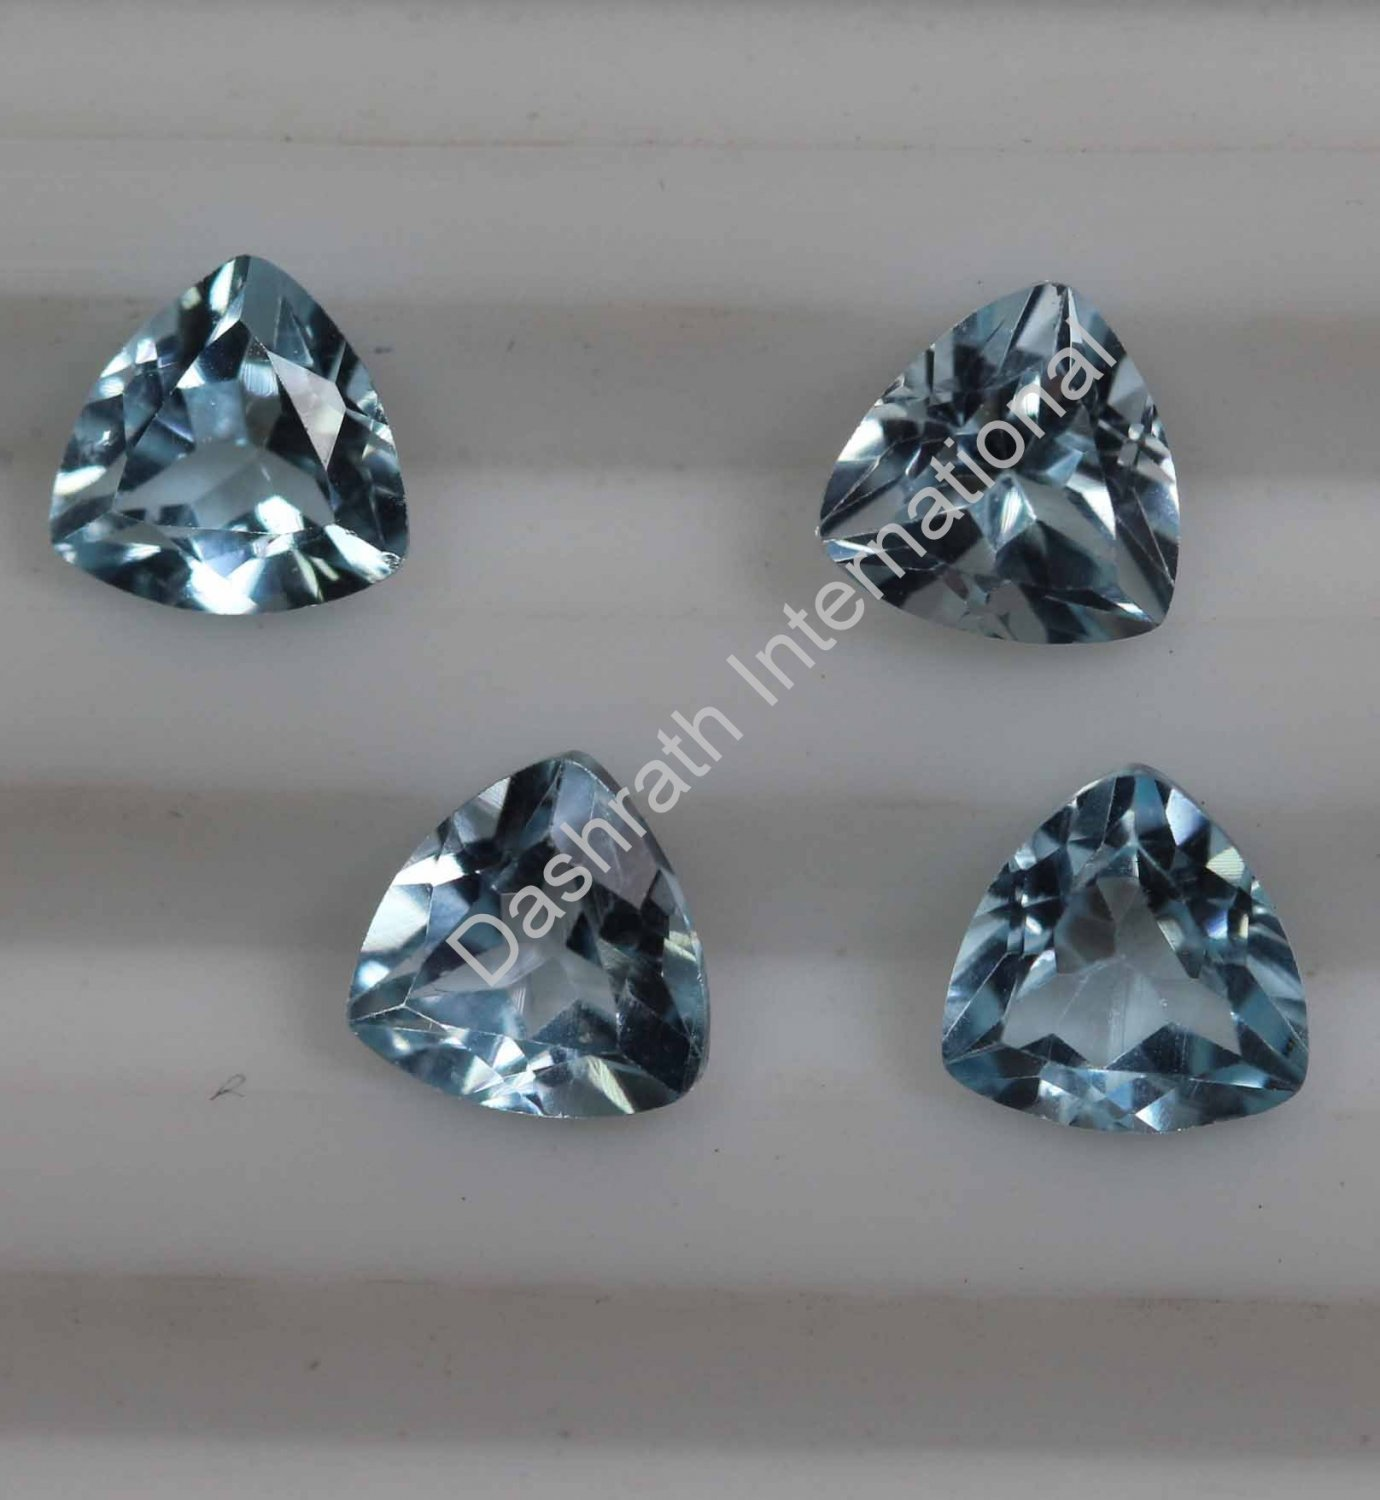 7mm Natural Sky Blue Topaz Faceted Cut Trillion 50 Pieces Lot Top Quality Loose Gemstone